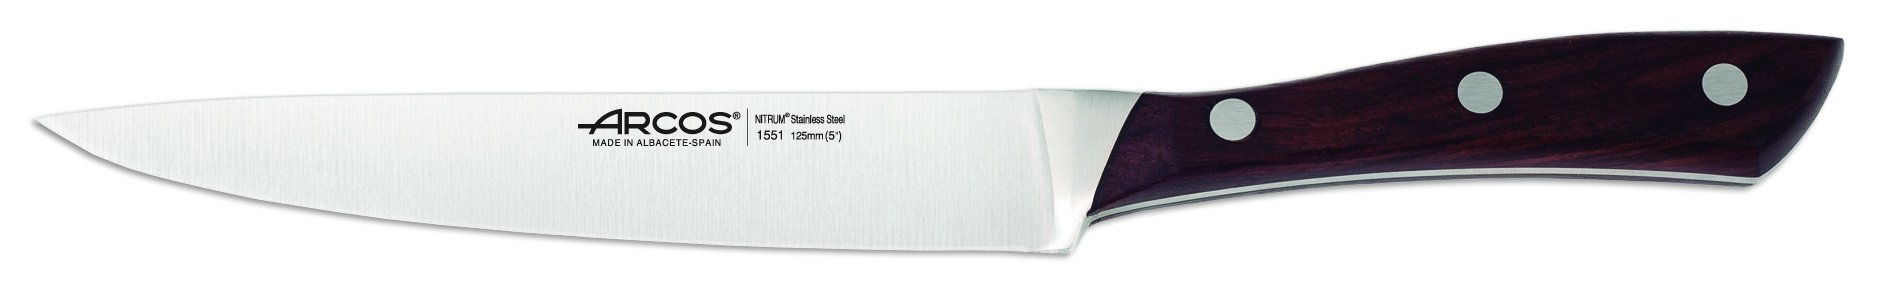 Arcos Natura Forged Vegetable Knife, 5-Inch by ARCOS